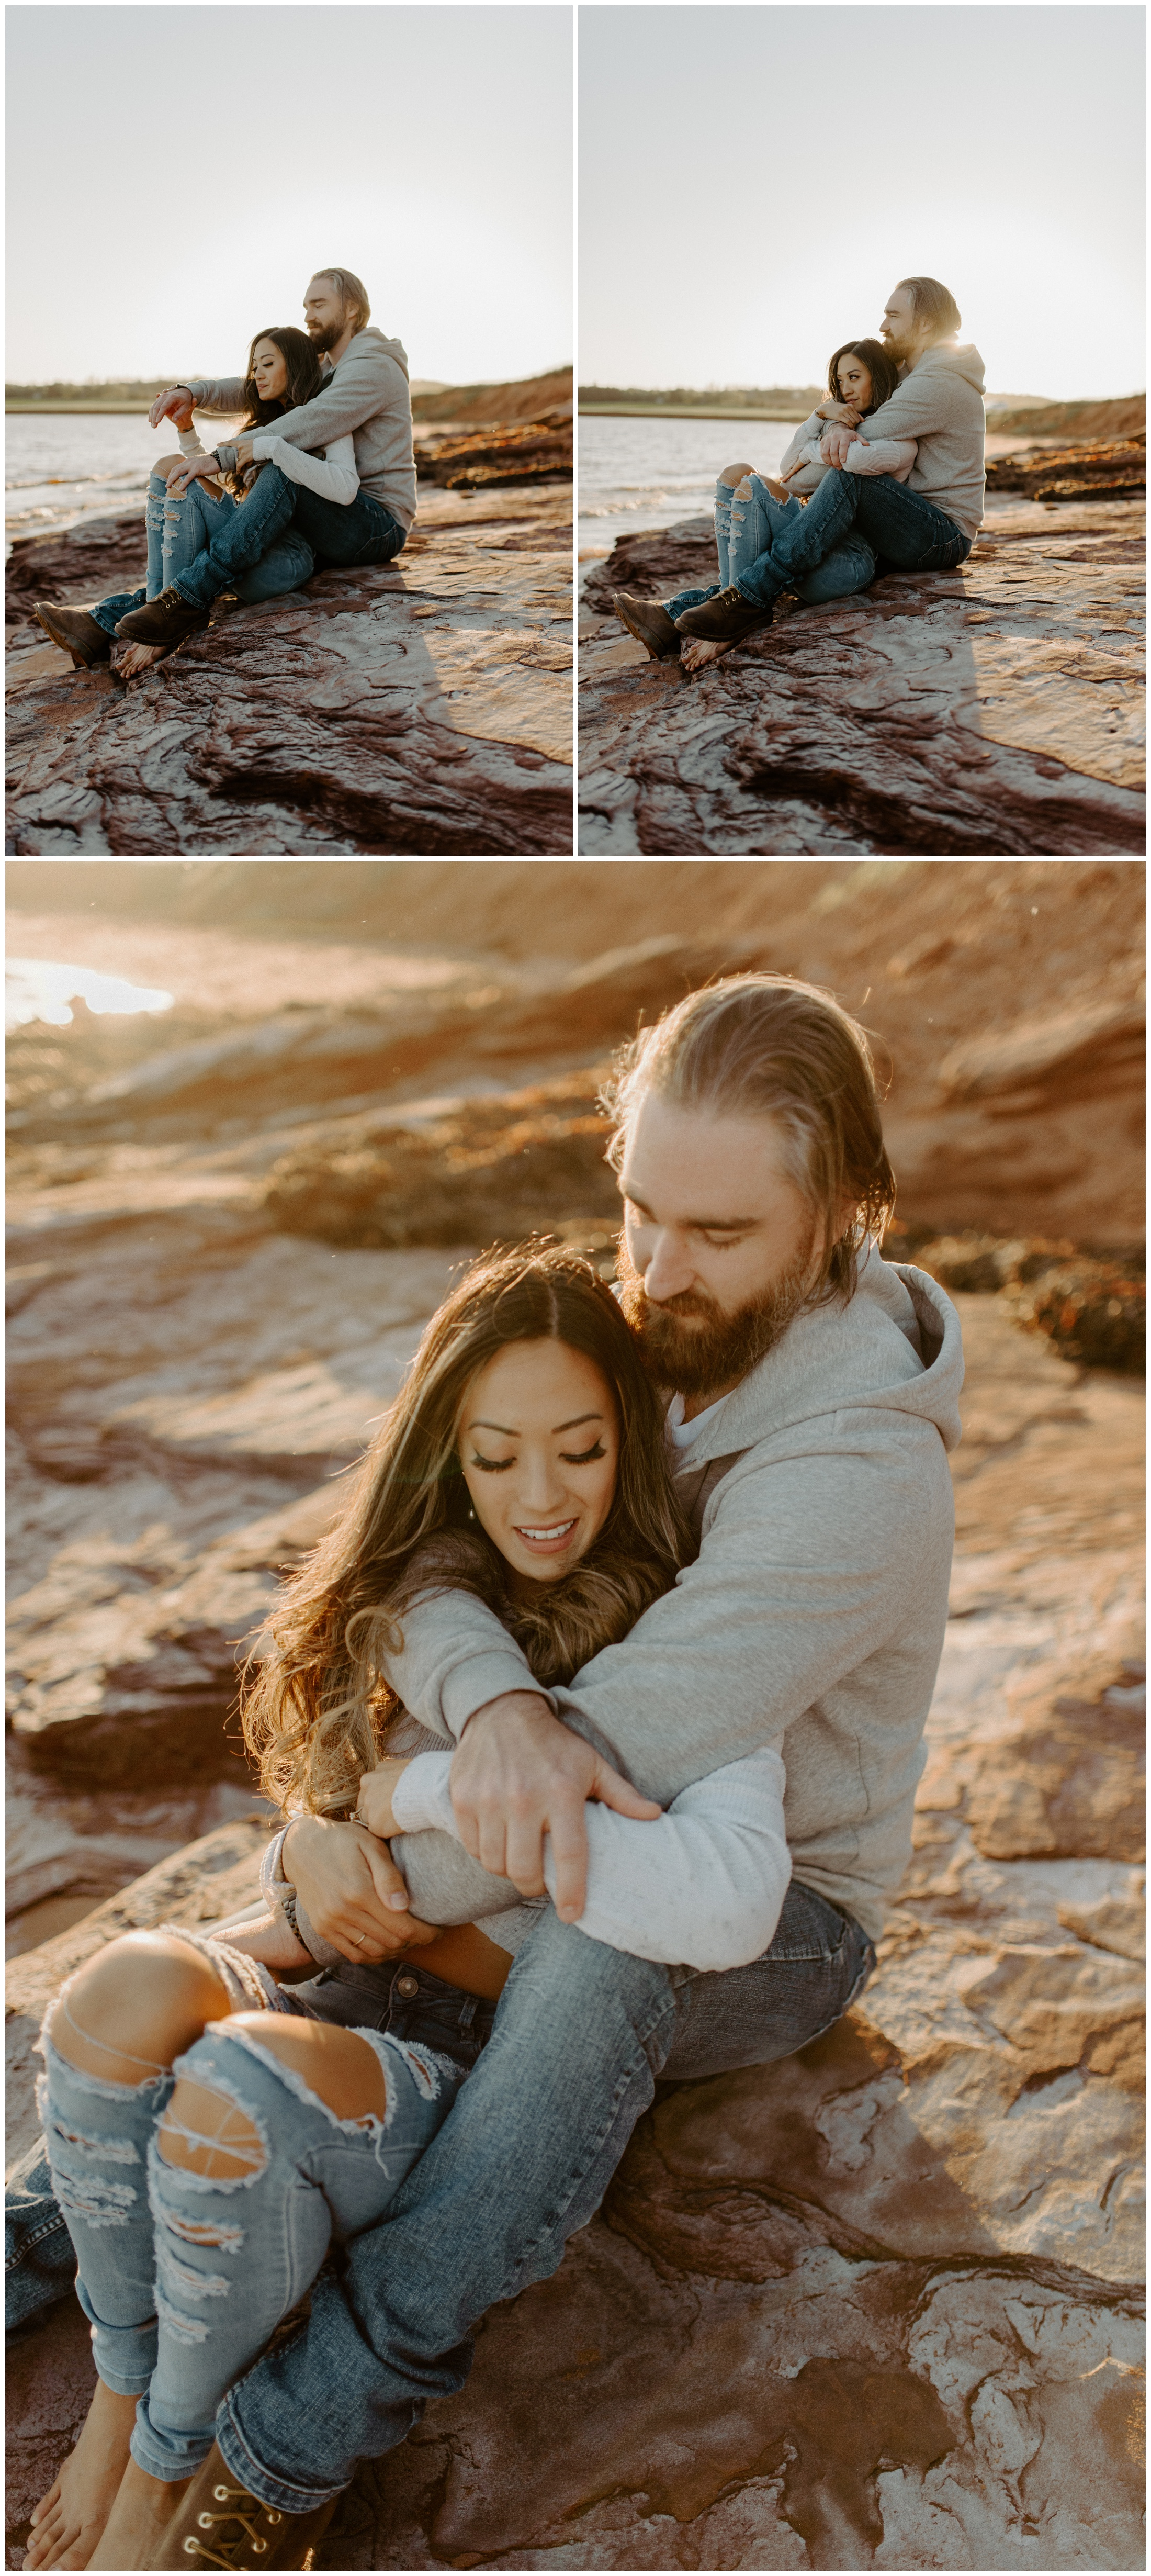 Red Sand Beach Engagements On Prince Edward Island at Sunset | Jessica Heron Images_0007.jpg